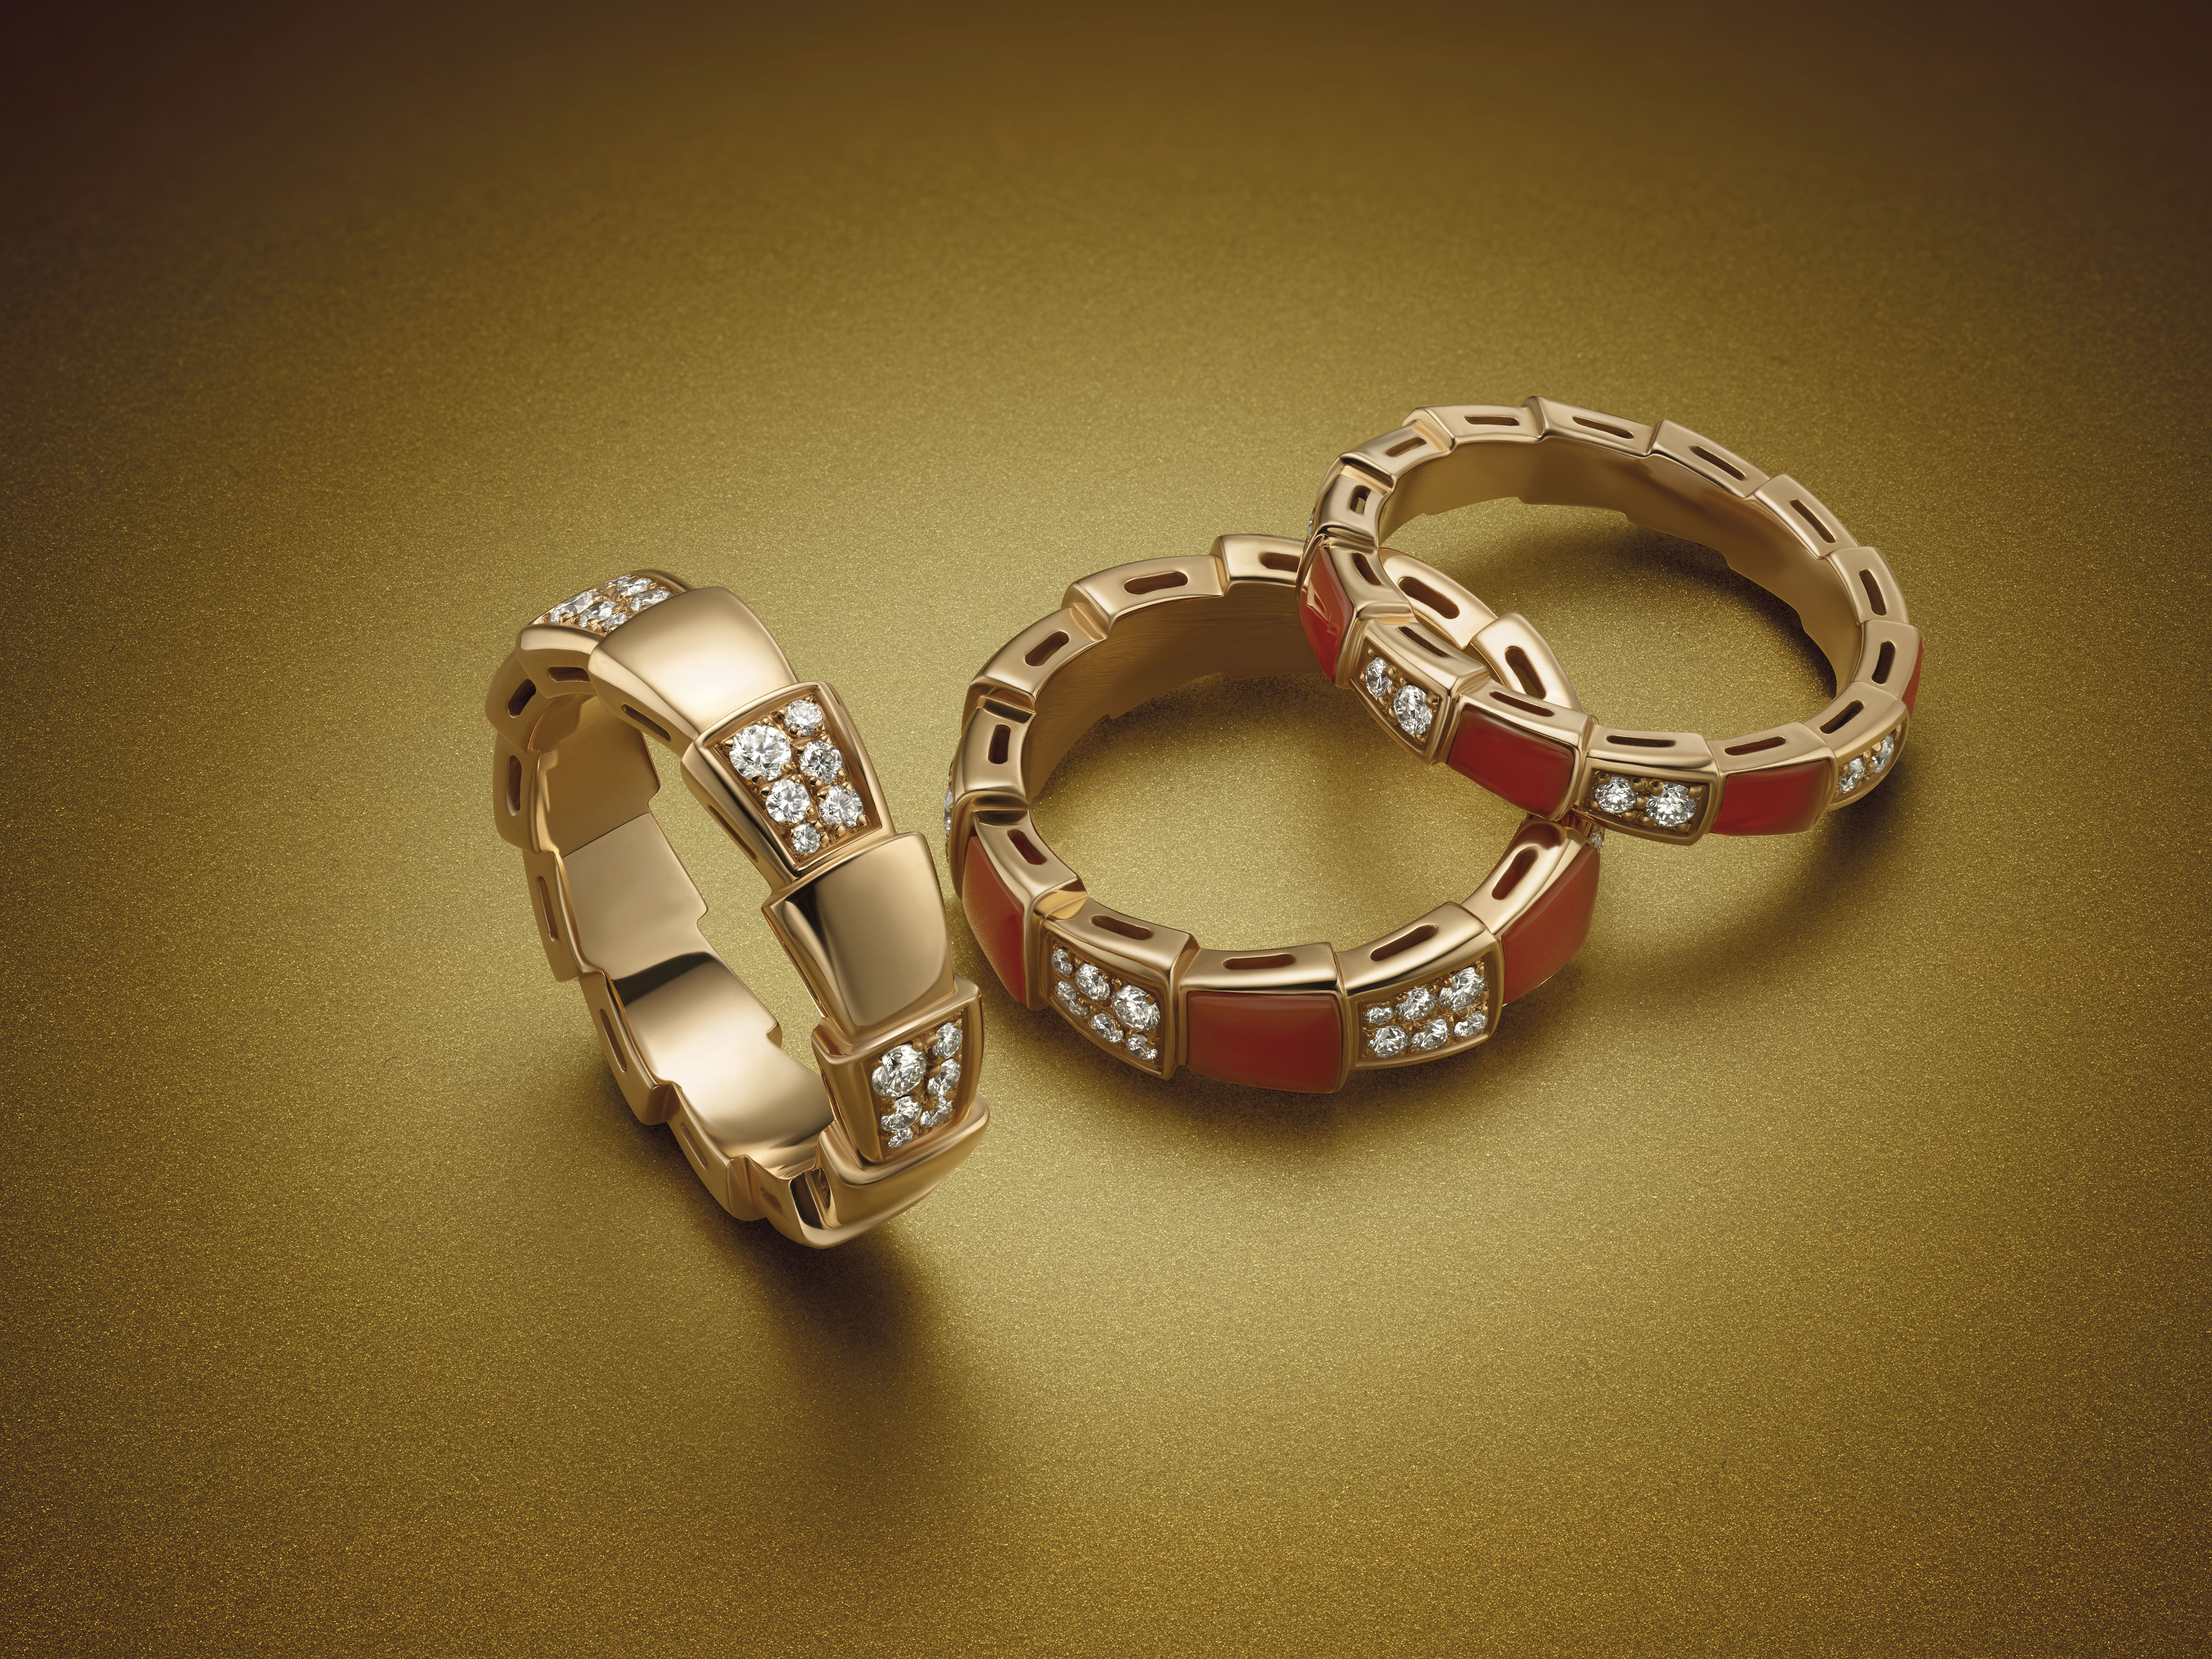 On the rocks: These Bulgari Serpenti Viper rings will slither their way into your heart